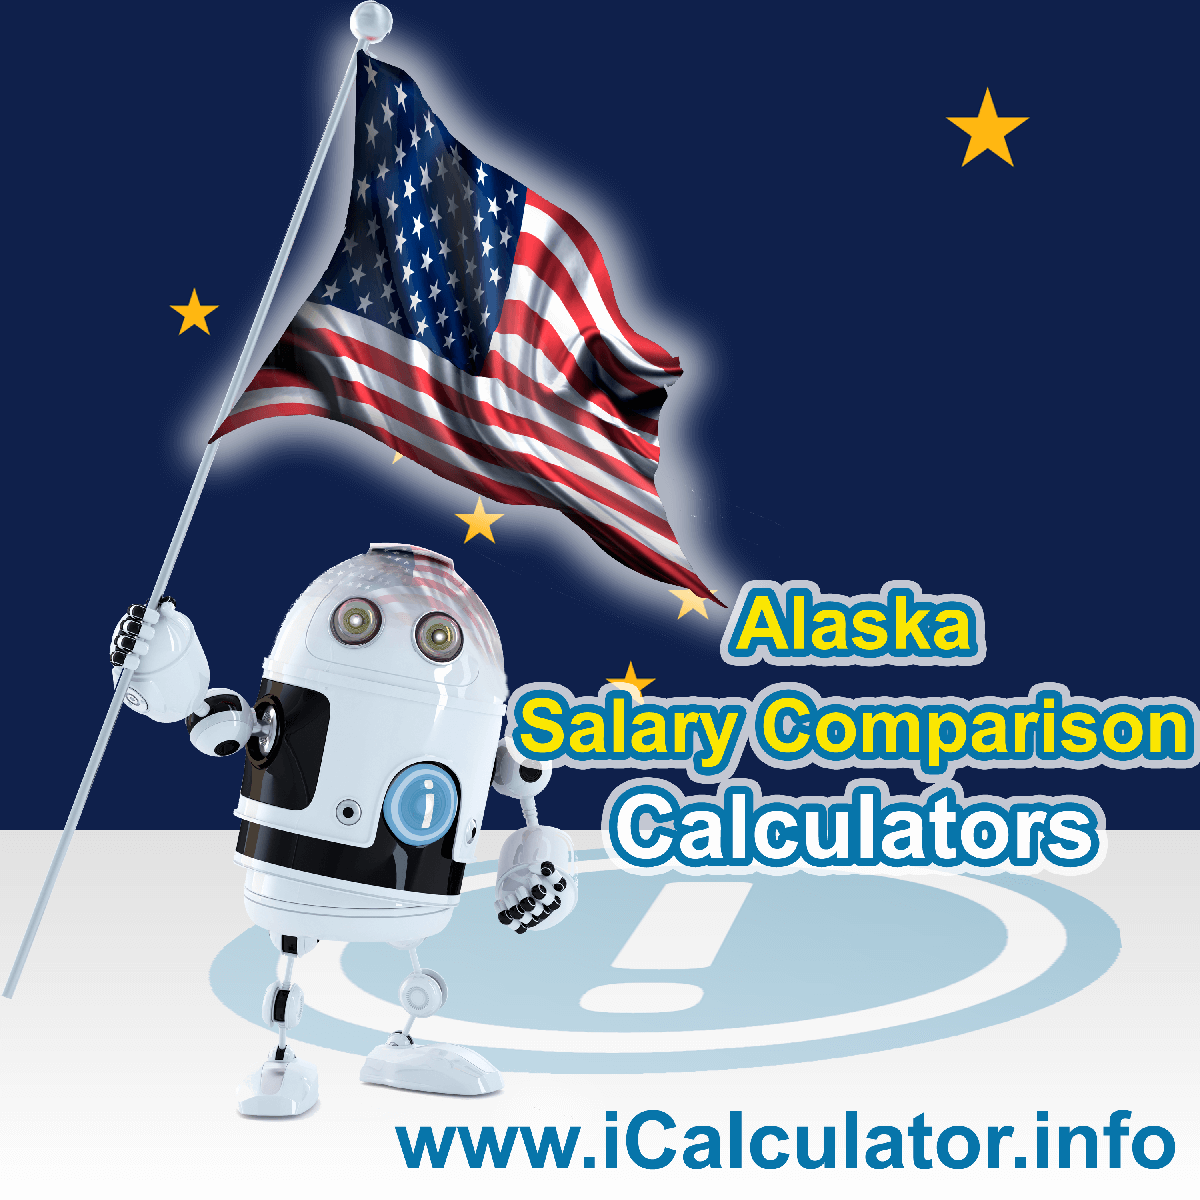 Alaska Salary Comparison Calculator 2019   iCalculator   The Alaska Salary Comparison Calculator allows you to quickly calculate and compare upto 6 salaries in Alaska or between other states for the 2019 tax year and historical tax years. Its an excellent tool for jobseekers, pay raise comparison and comparison of salaries between different US States